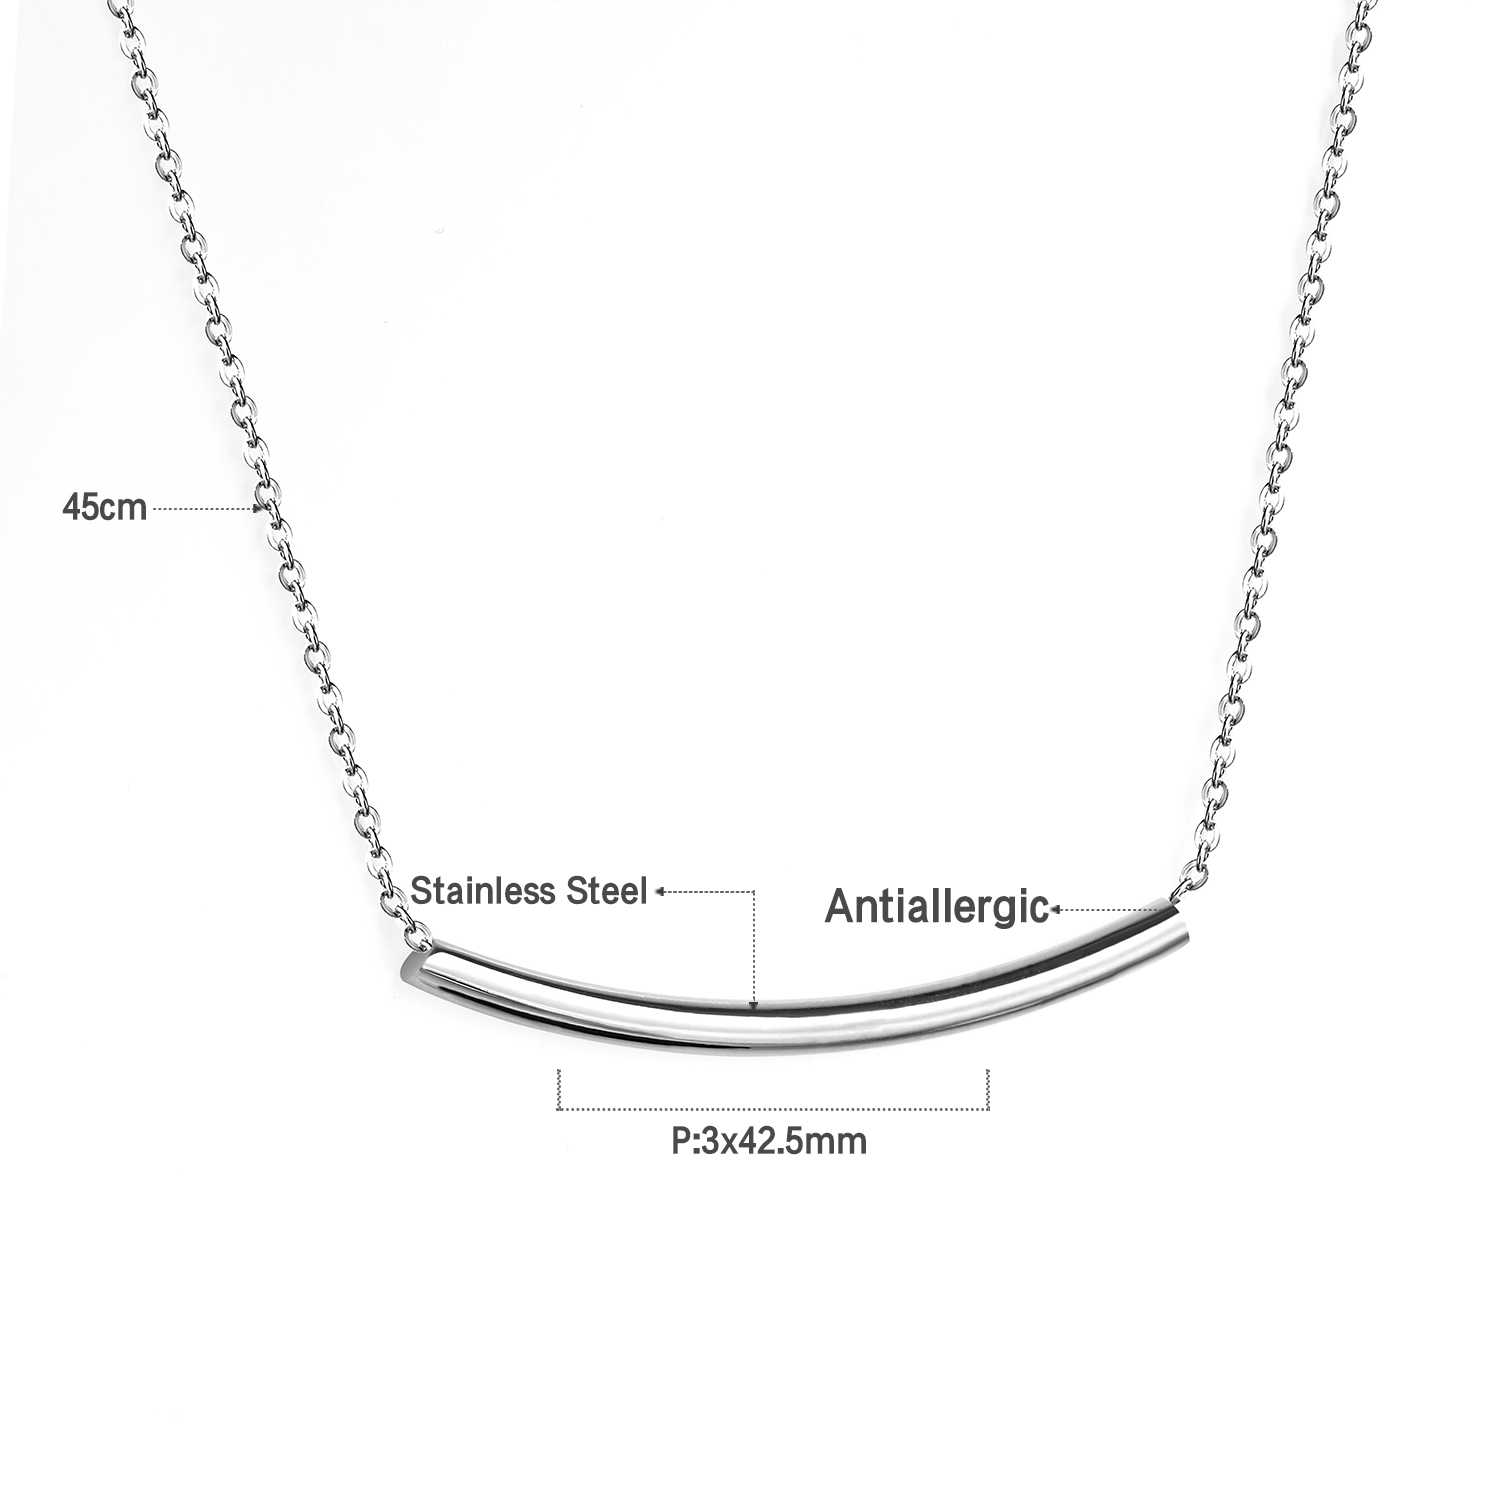 LUXUSTEEL Long Curved Horizontal Tube Bar Gold/Silver Pendant Necklace Stainless Steel Chains Necklaces Wholesale Party Friend